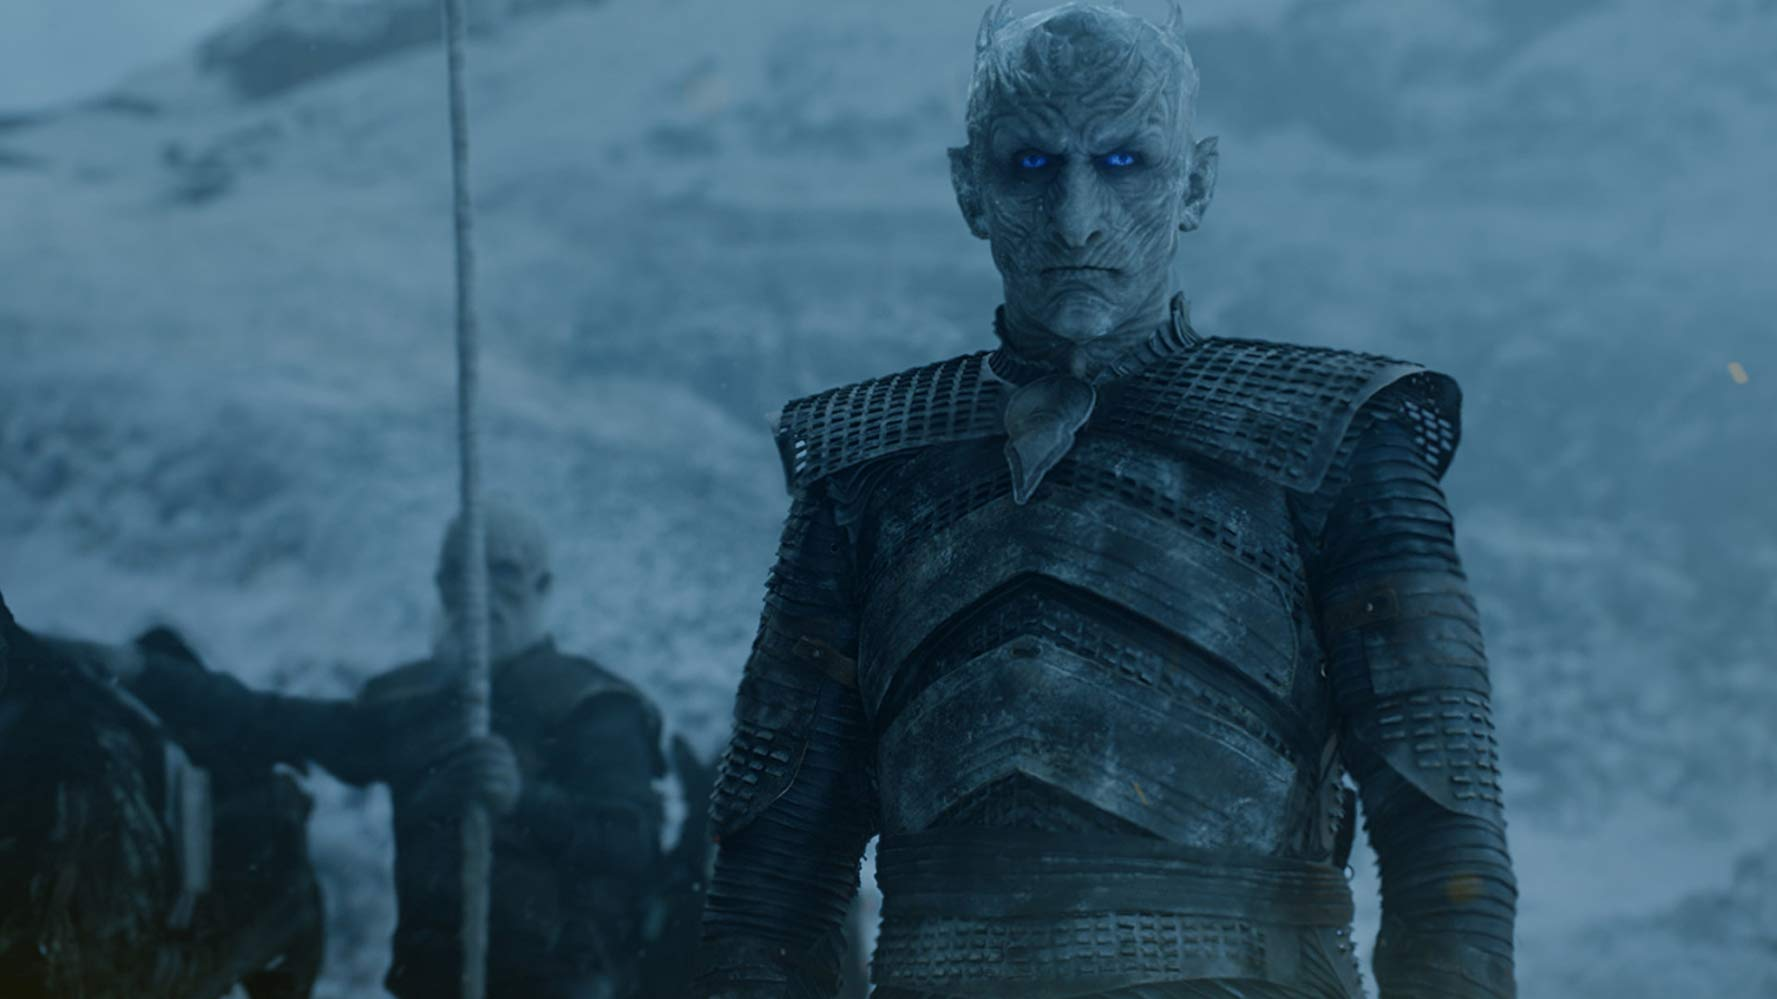 Vladimir 'Furdo' Furdik (Night King) in Game of Thrones (2011). (Source: IMDB)